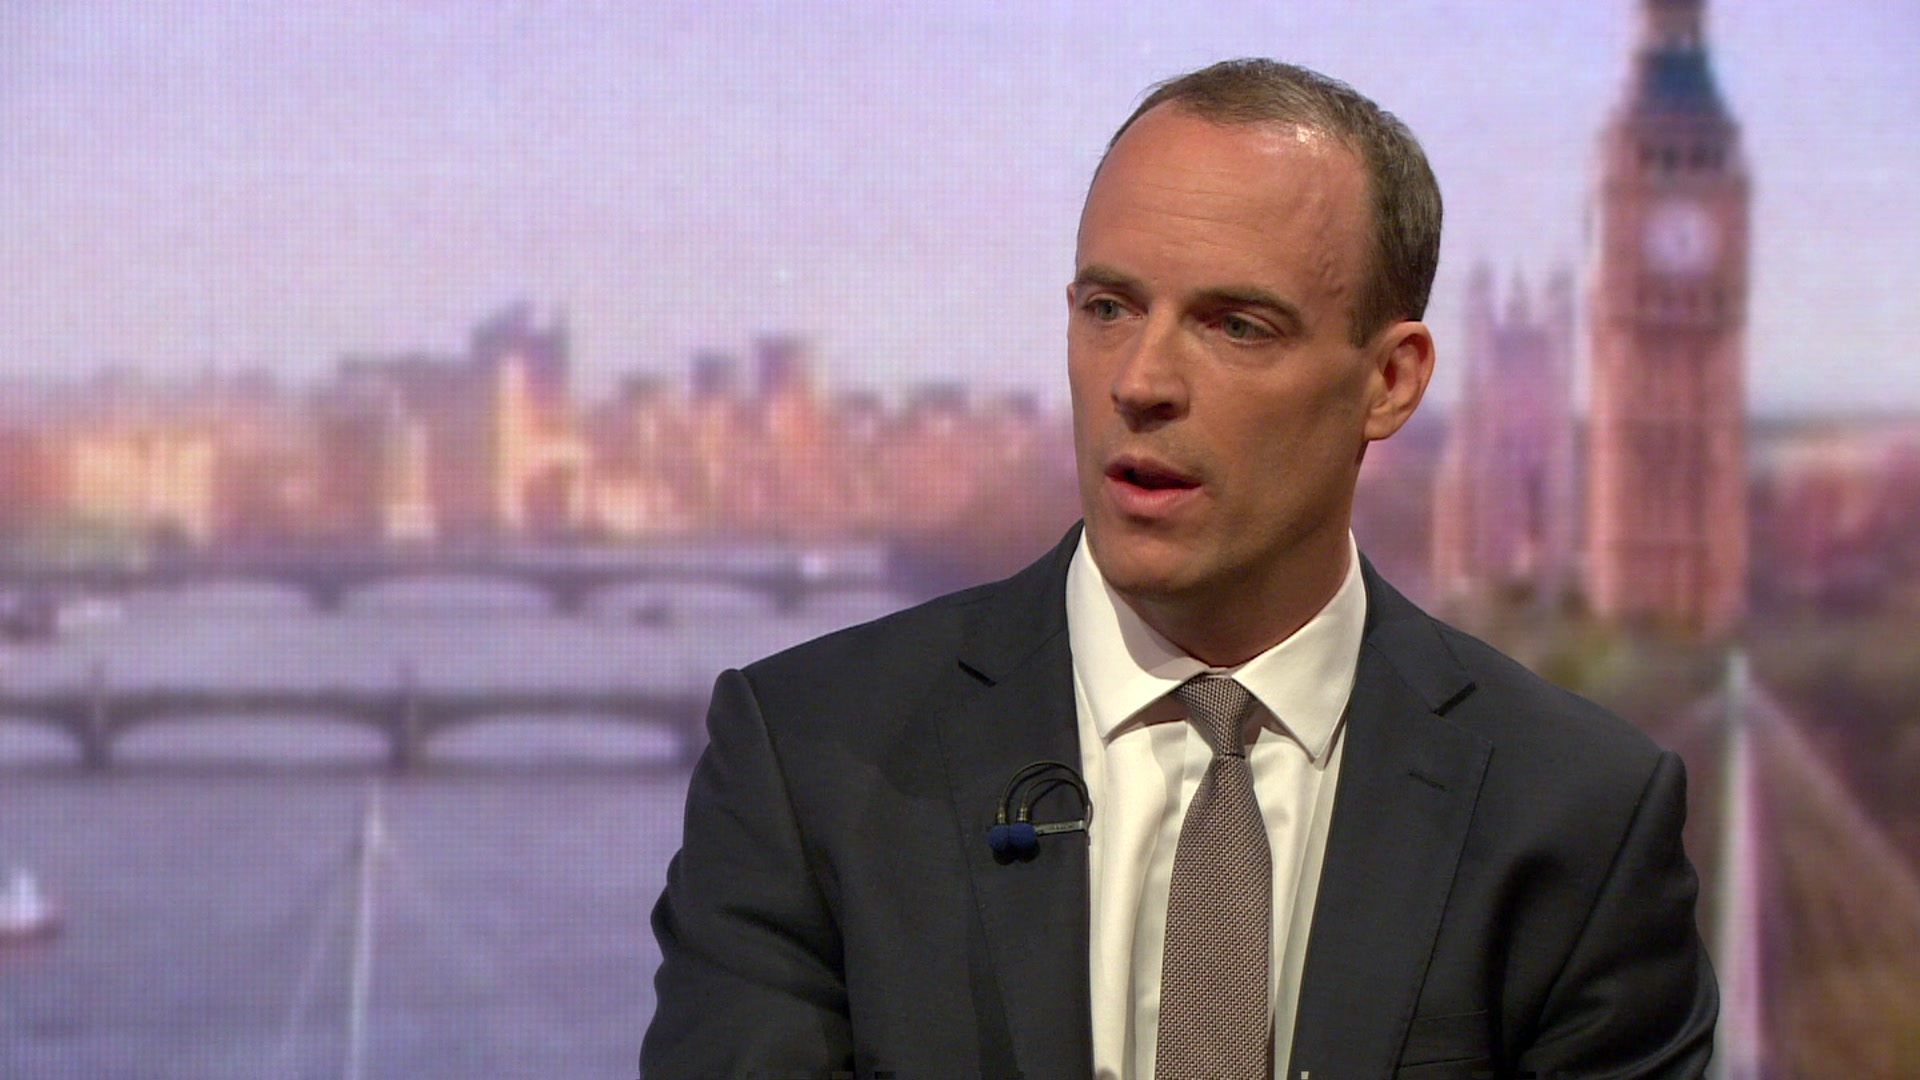 Dominic Raab: We can get Brexit deal done by October